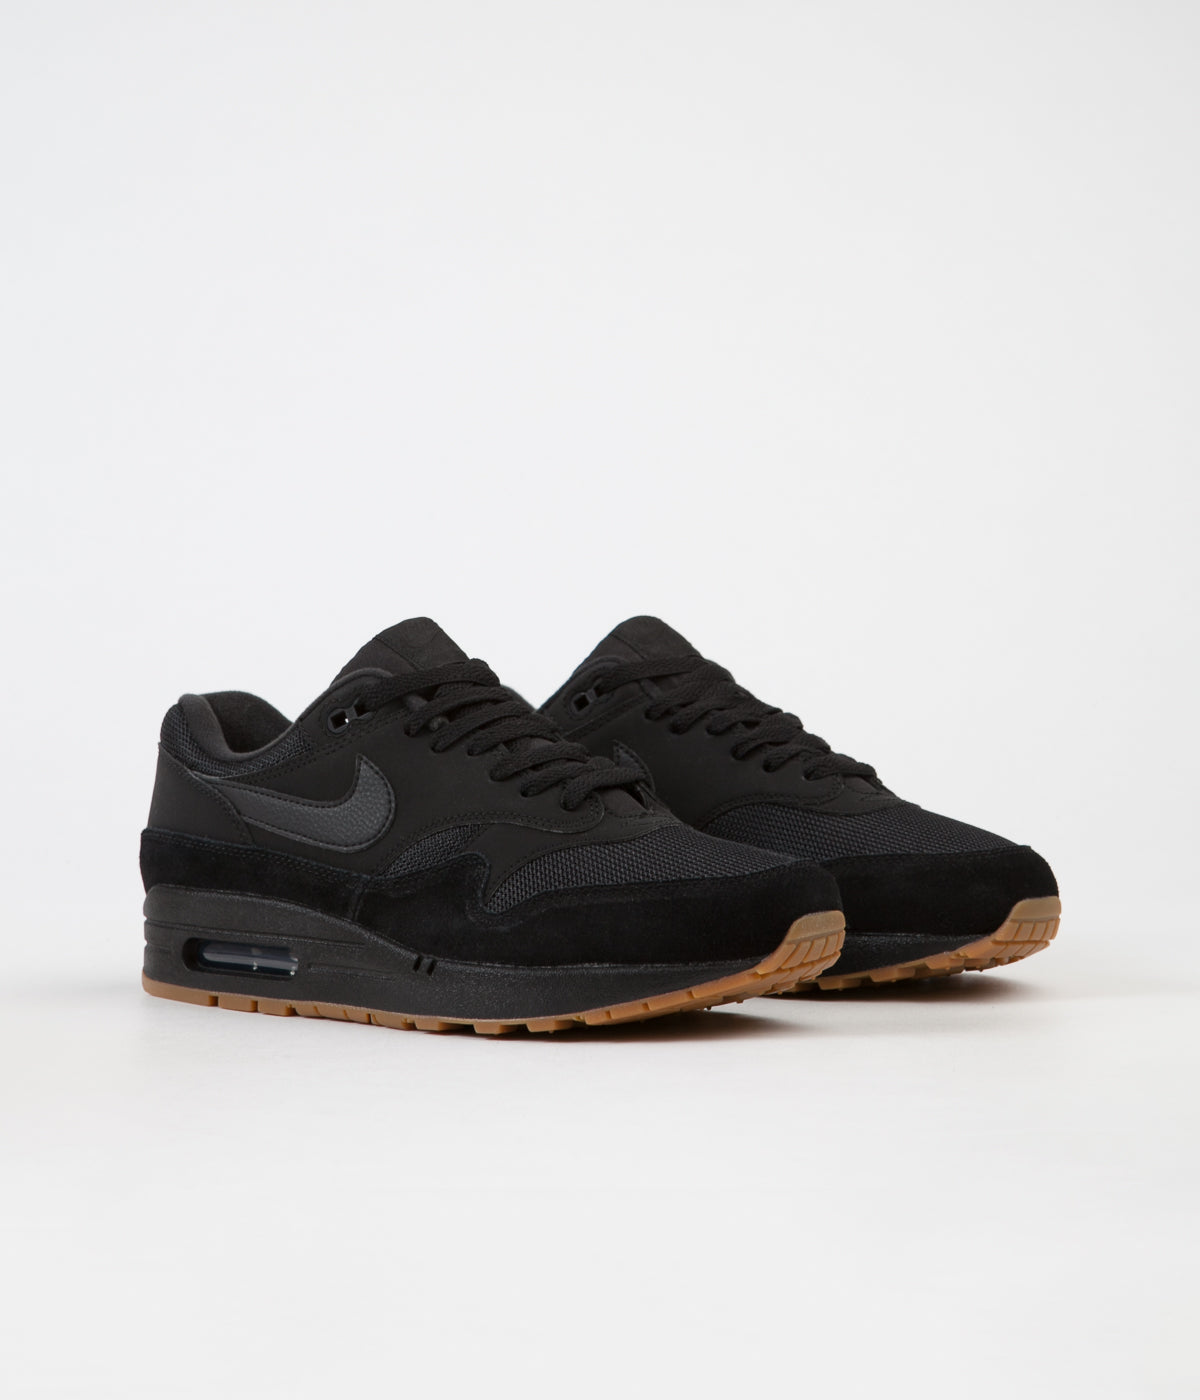 new styles eff39 701d3 Nike Air Max 1 Shoes - Black   Black - Black - Gum Med Brown   Always in  Colour